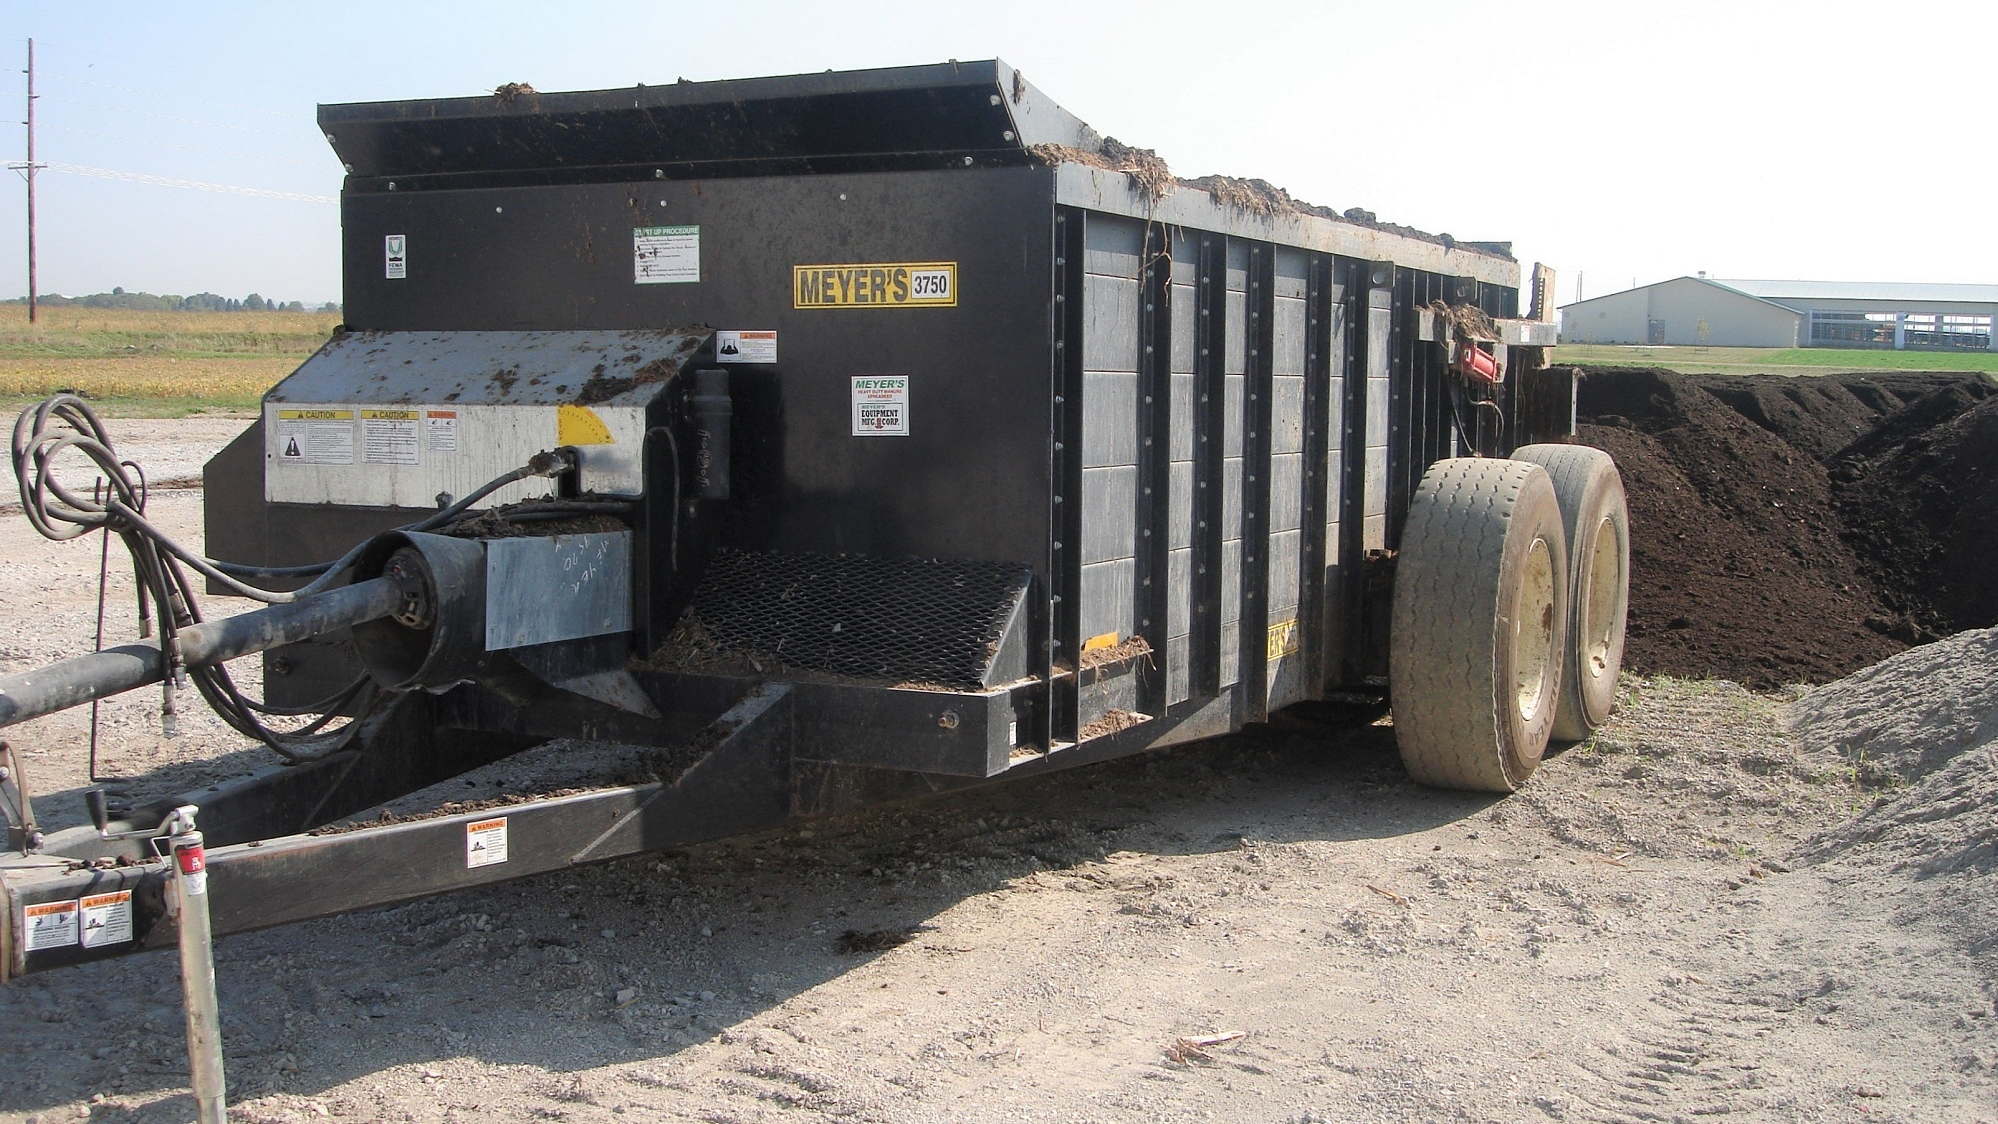 Waggon for placing separation solids in windrows at an Iowa cattle farm.